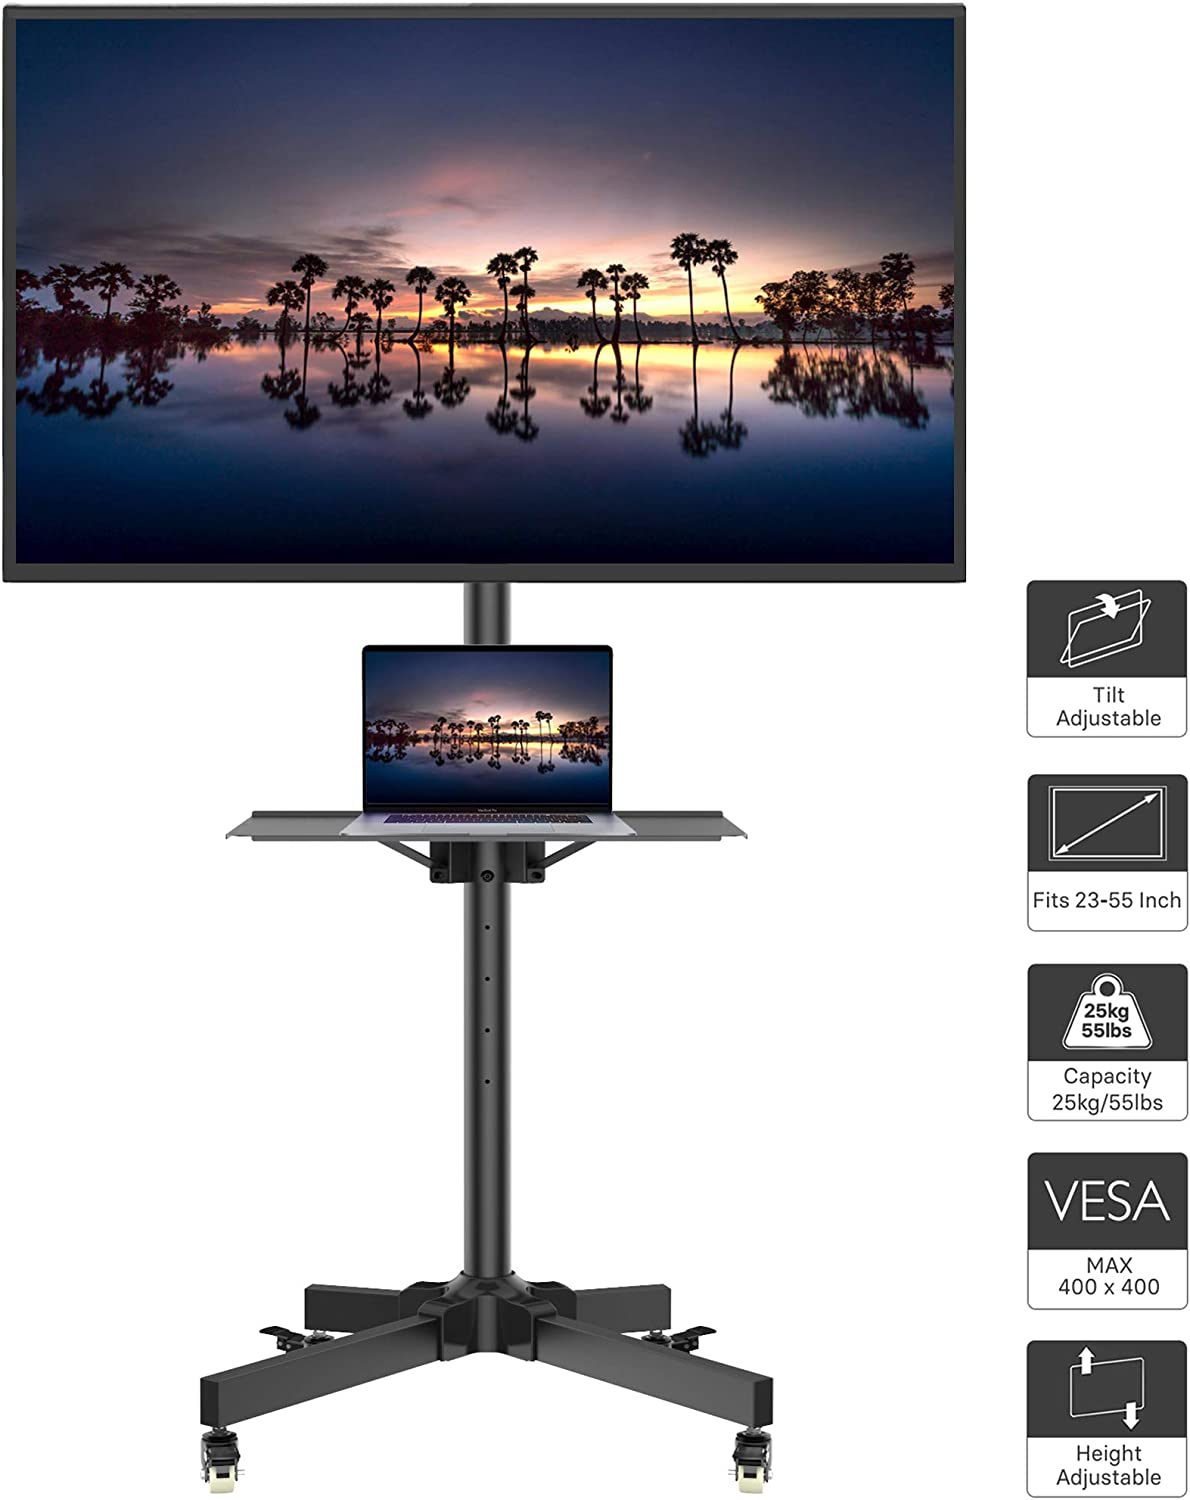 1home Mobile TV Cart Rolling TV Stand with Laptop Shelf/Tray, Locking Wheels for 23-55 inch LCD LED OLED Plasma Display Trolley Floor Stand Holds up to 55lbs Max VESA 400x400mm Black : Office Products